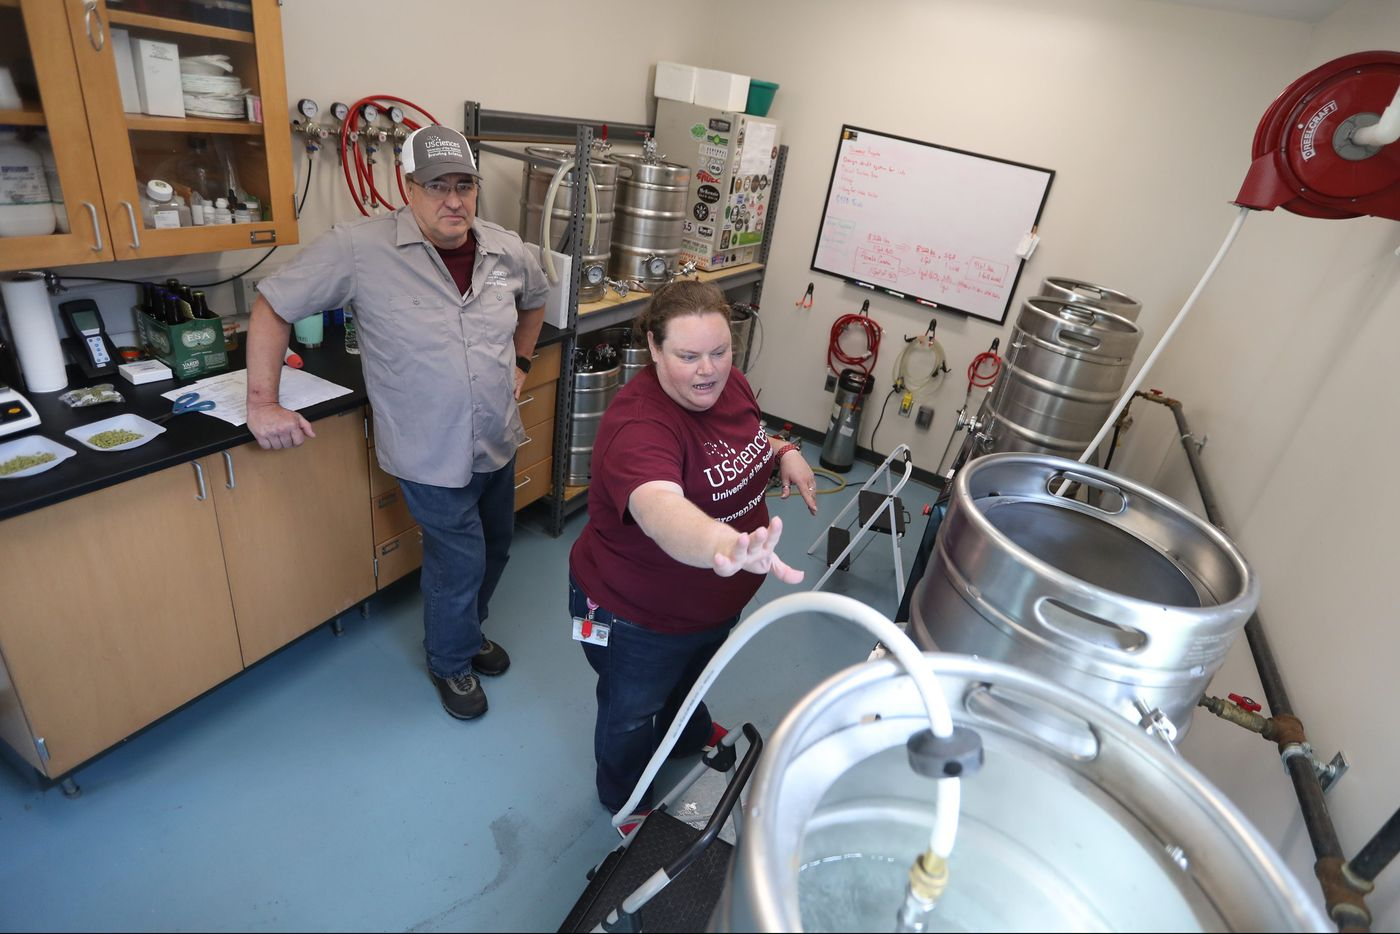 Want to break into Philly's booming craft beer scene? Study up.